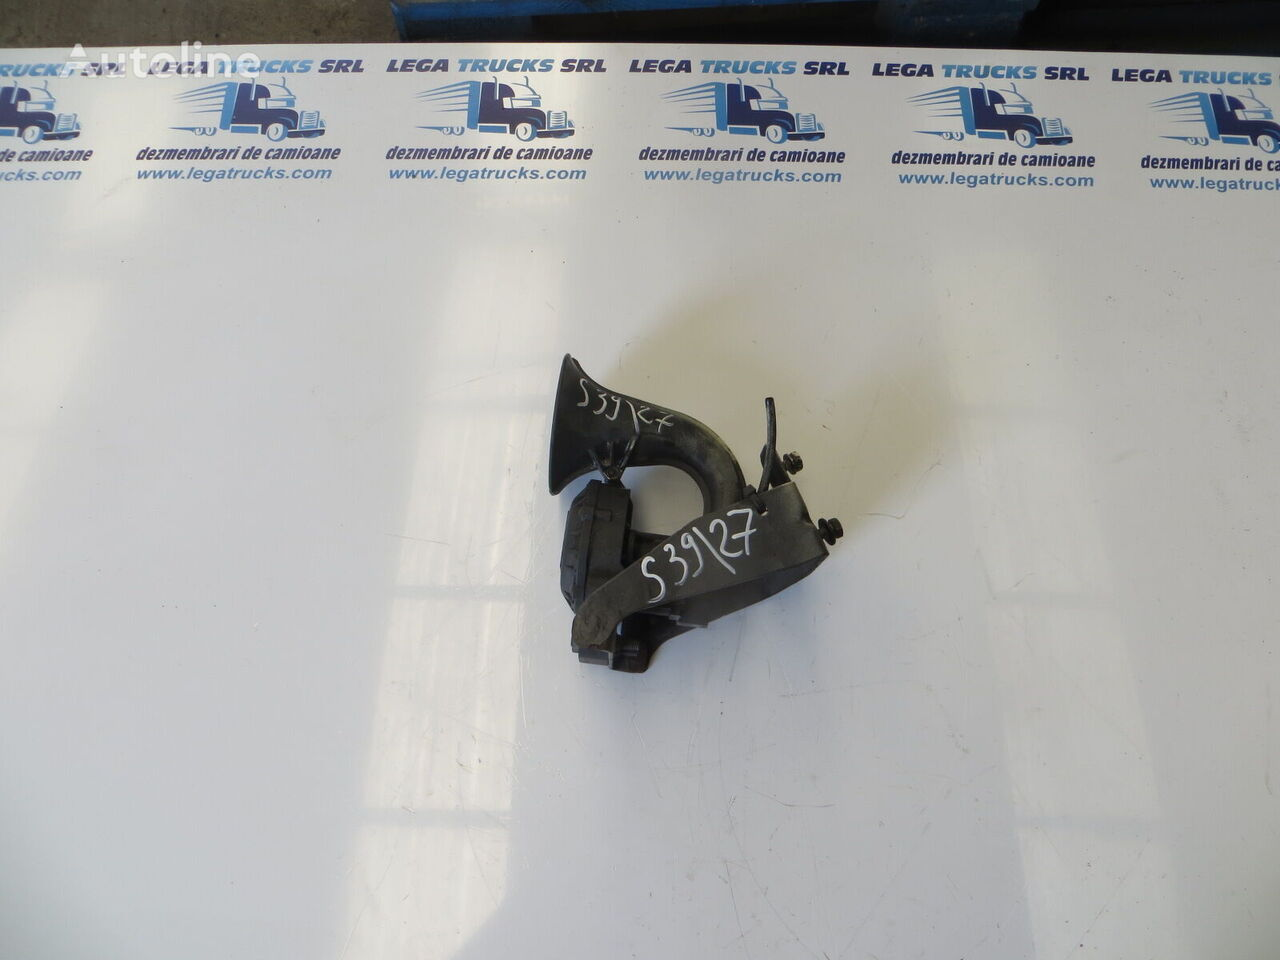 CLAXON+SUPORT SCANIA R480 EURO 6 2014 SCANIA CLAXON+SUPORT R480 EURO 6 2014 other cabin part for SCANIA R tractor unit